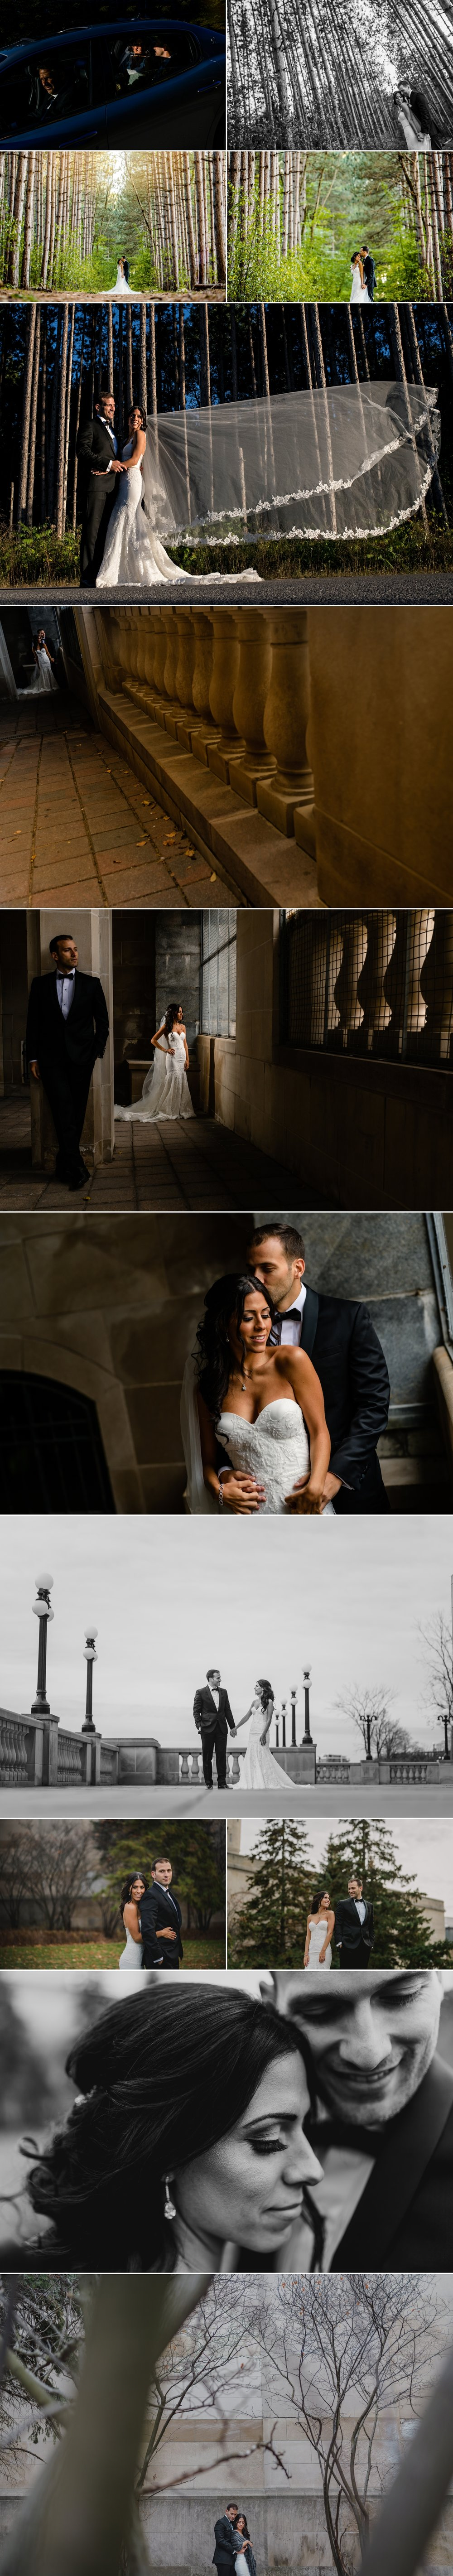 bride and groom portraits at lebanese wedding in ottawa